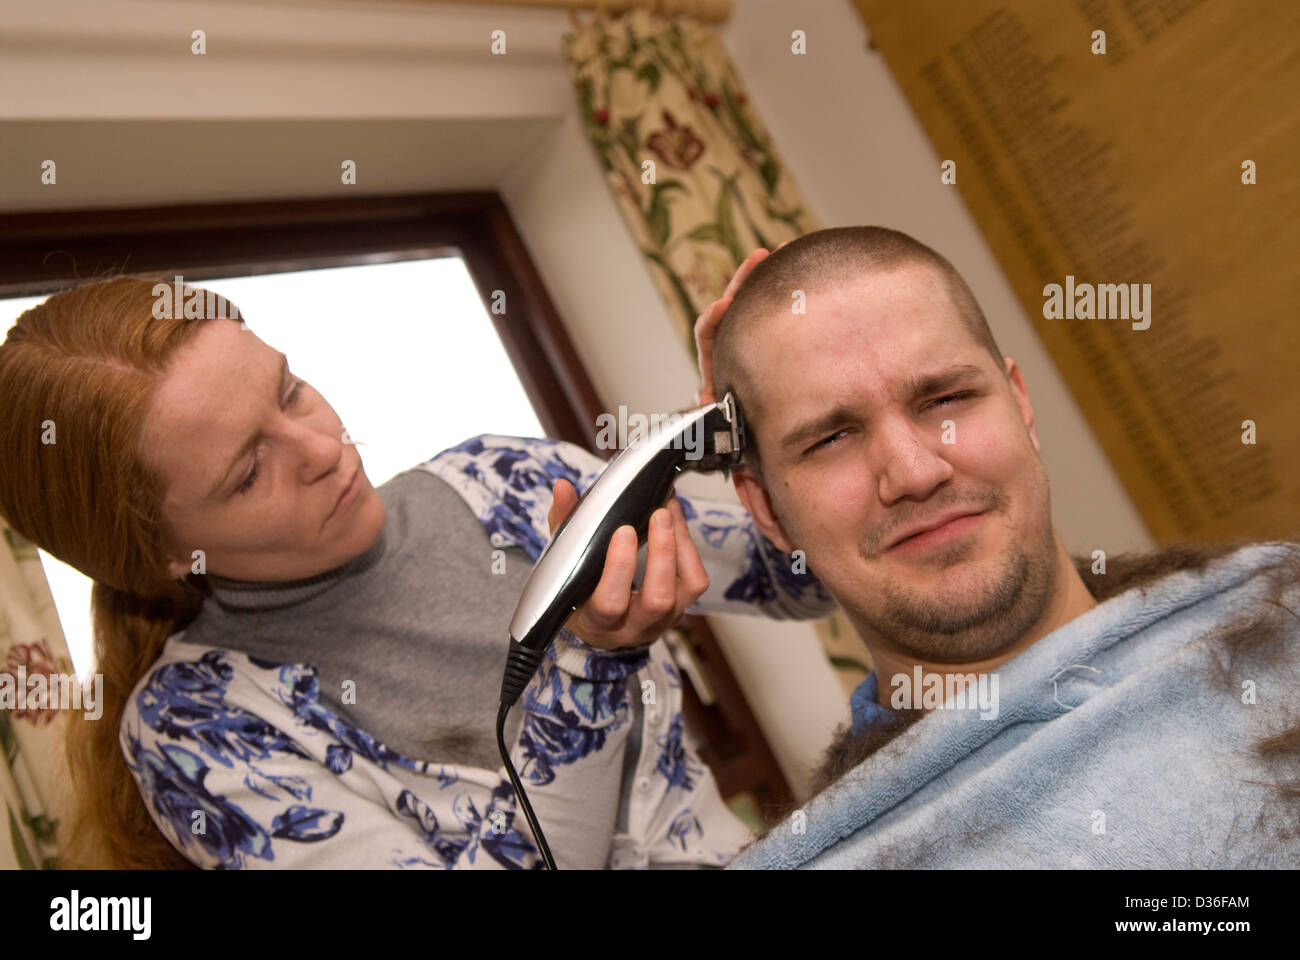 26 year old man in process of having all his hair shaved off for a cancer charity, Bordon, Hampshire, UK. - Stock Image